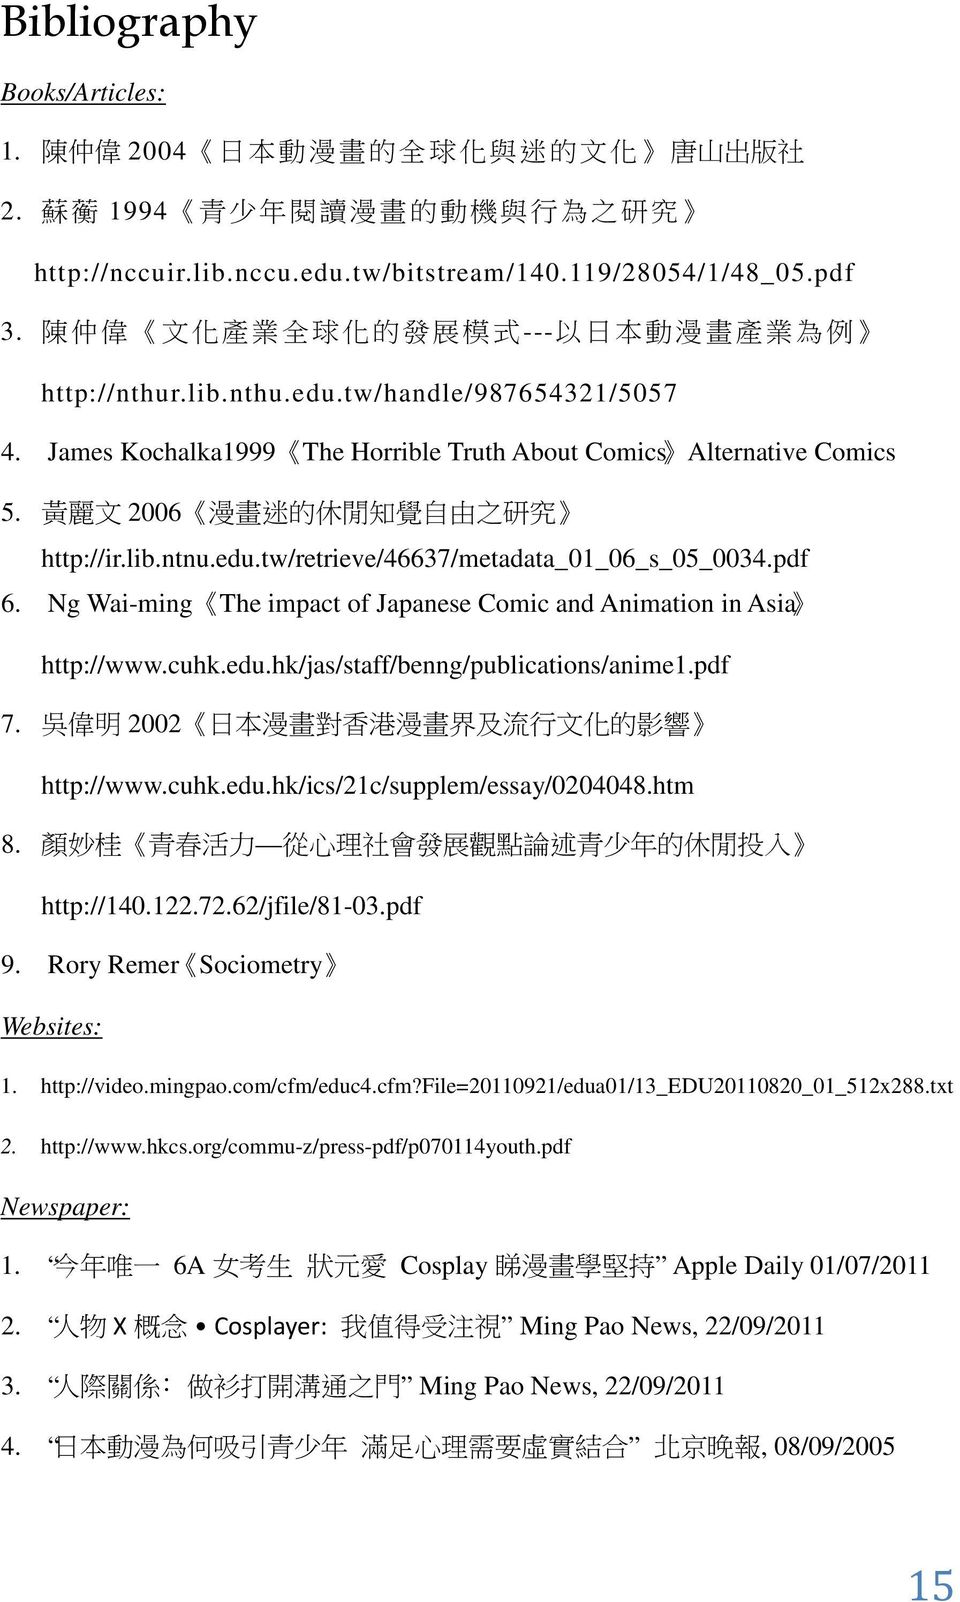 黃 麗 文 2006 漫 畫 迷 的 休 閒 知 覺 自 由 之 研 究 http://ir.lib.ntnu.edu.tw/retrieve/46637/metadata_01_06_s_05_0034.pdf 6. Ng Wai-ming The impact of Japanese Comic and Animation in Asia http://www.cuhk.edu.hk/jas/staff/benng/publications/anime1.